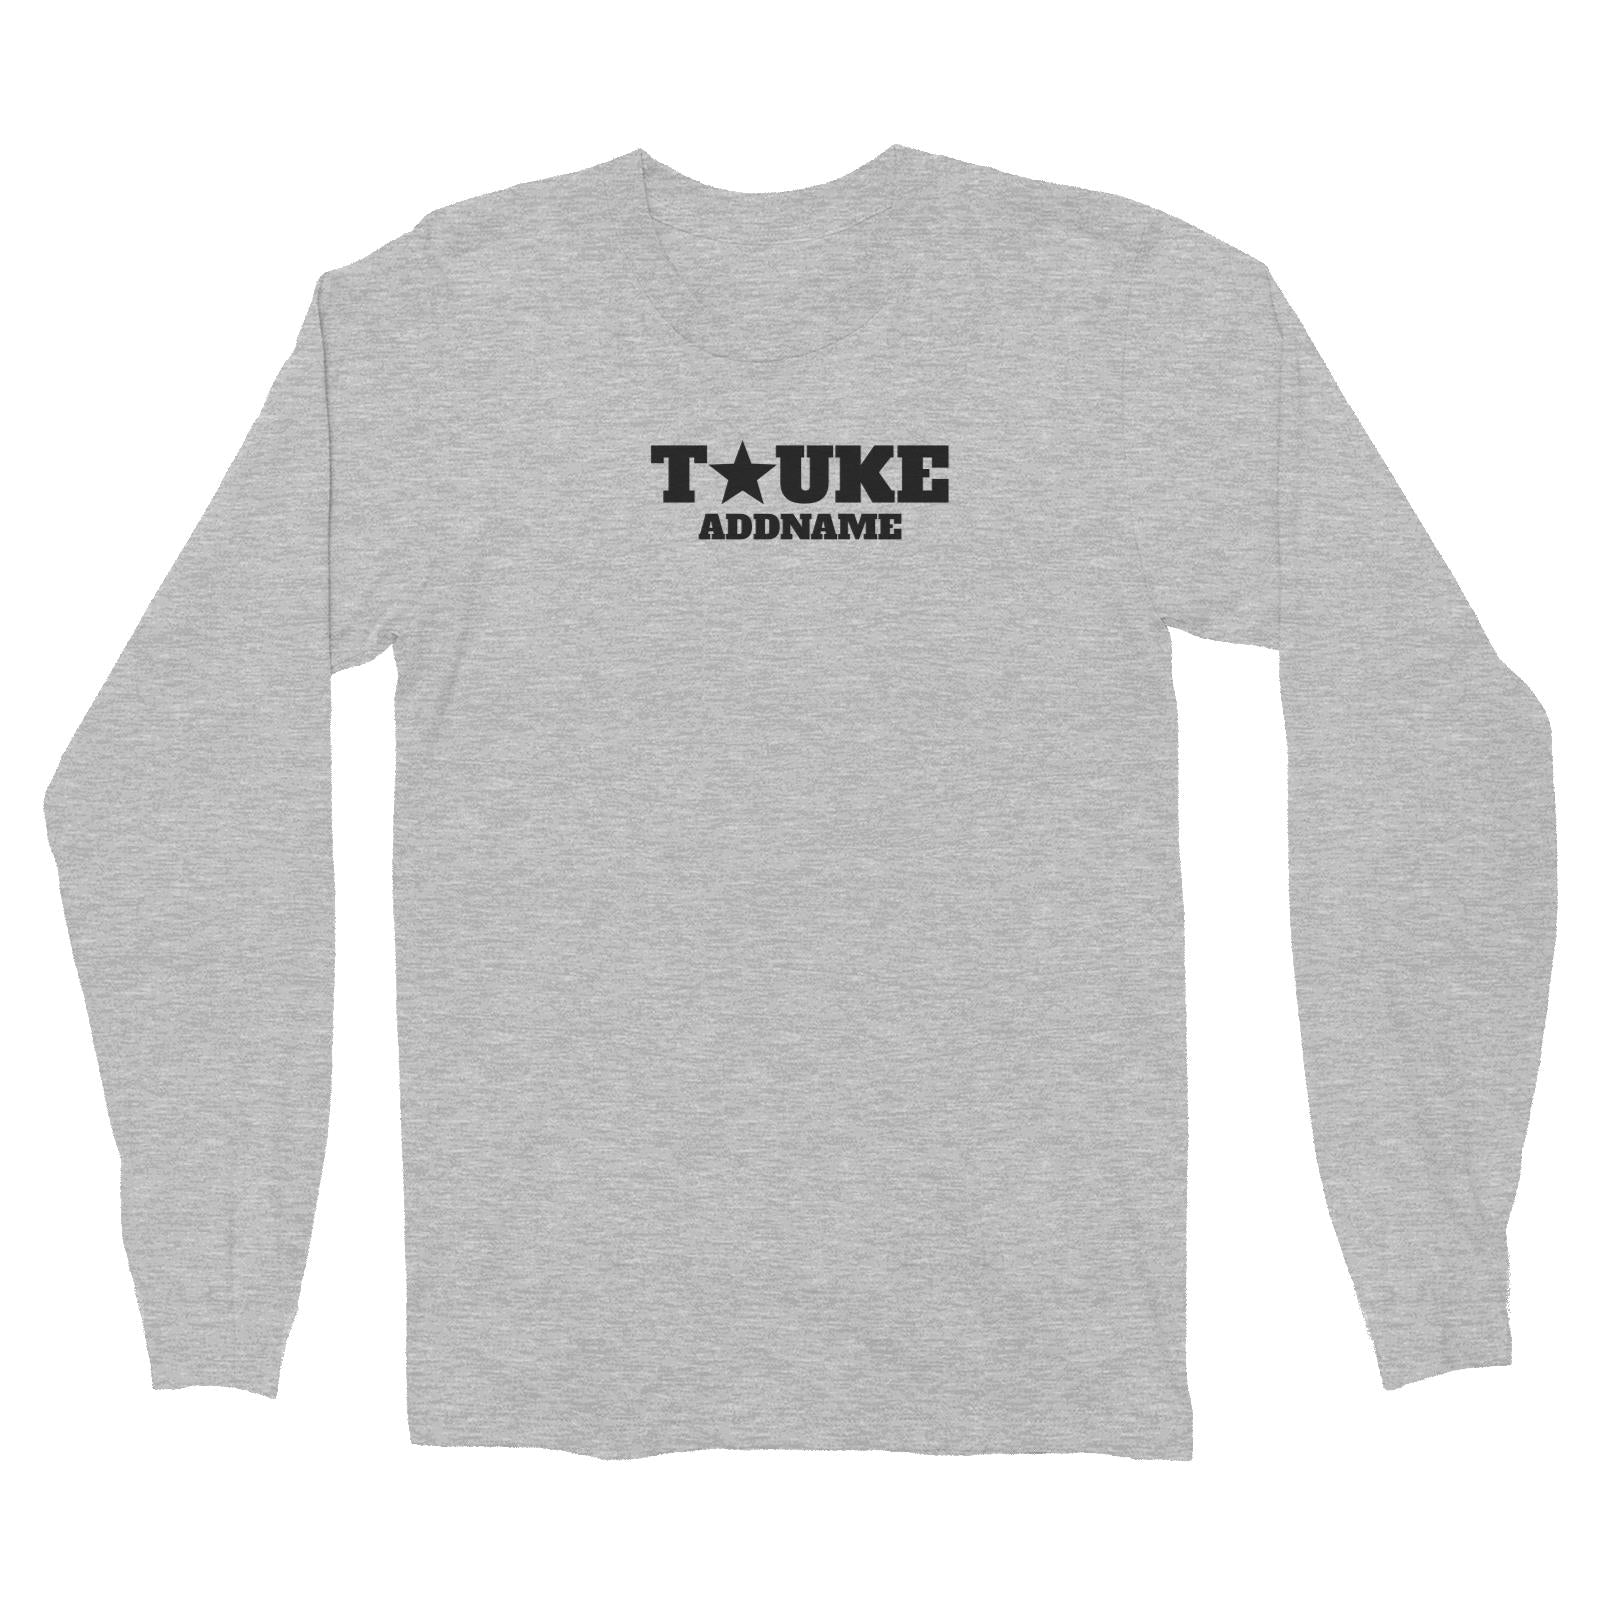 Tauke Star Long Sleeve Unisex T-Shirt